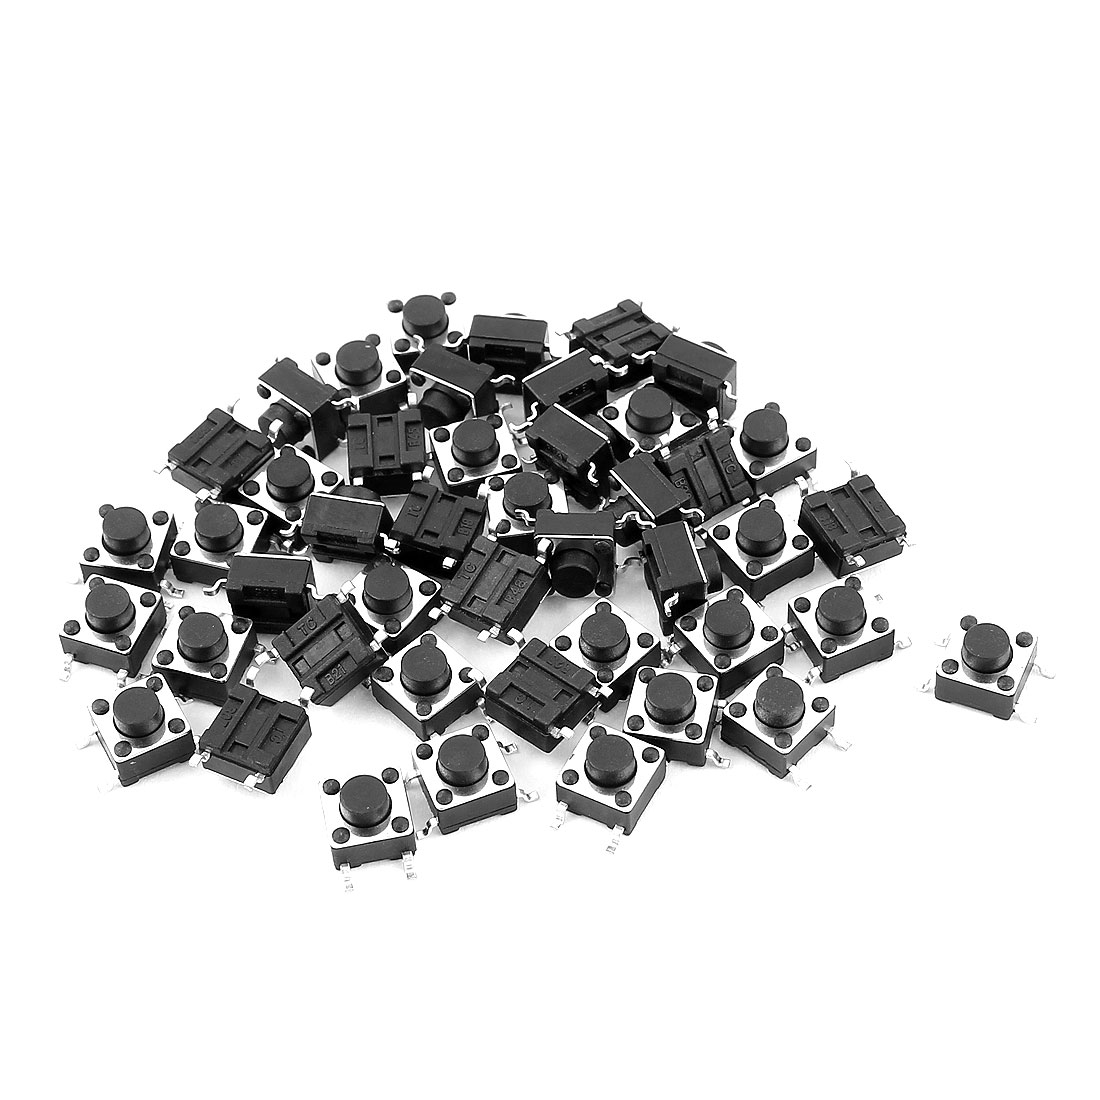 45Pcs 6x6x5mm 4 Pins Panel PCB Mount Momentary Tactile Tact Round Push Button Switch Black